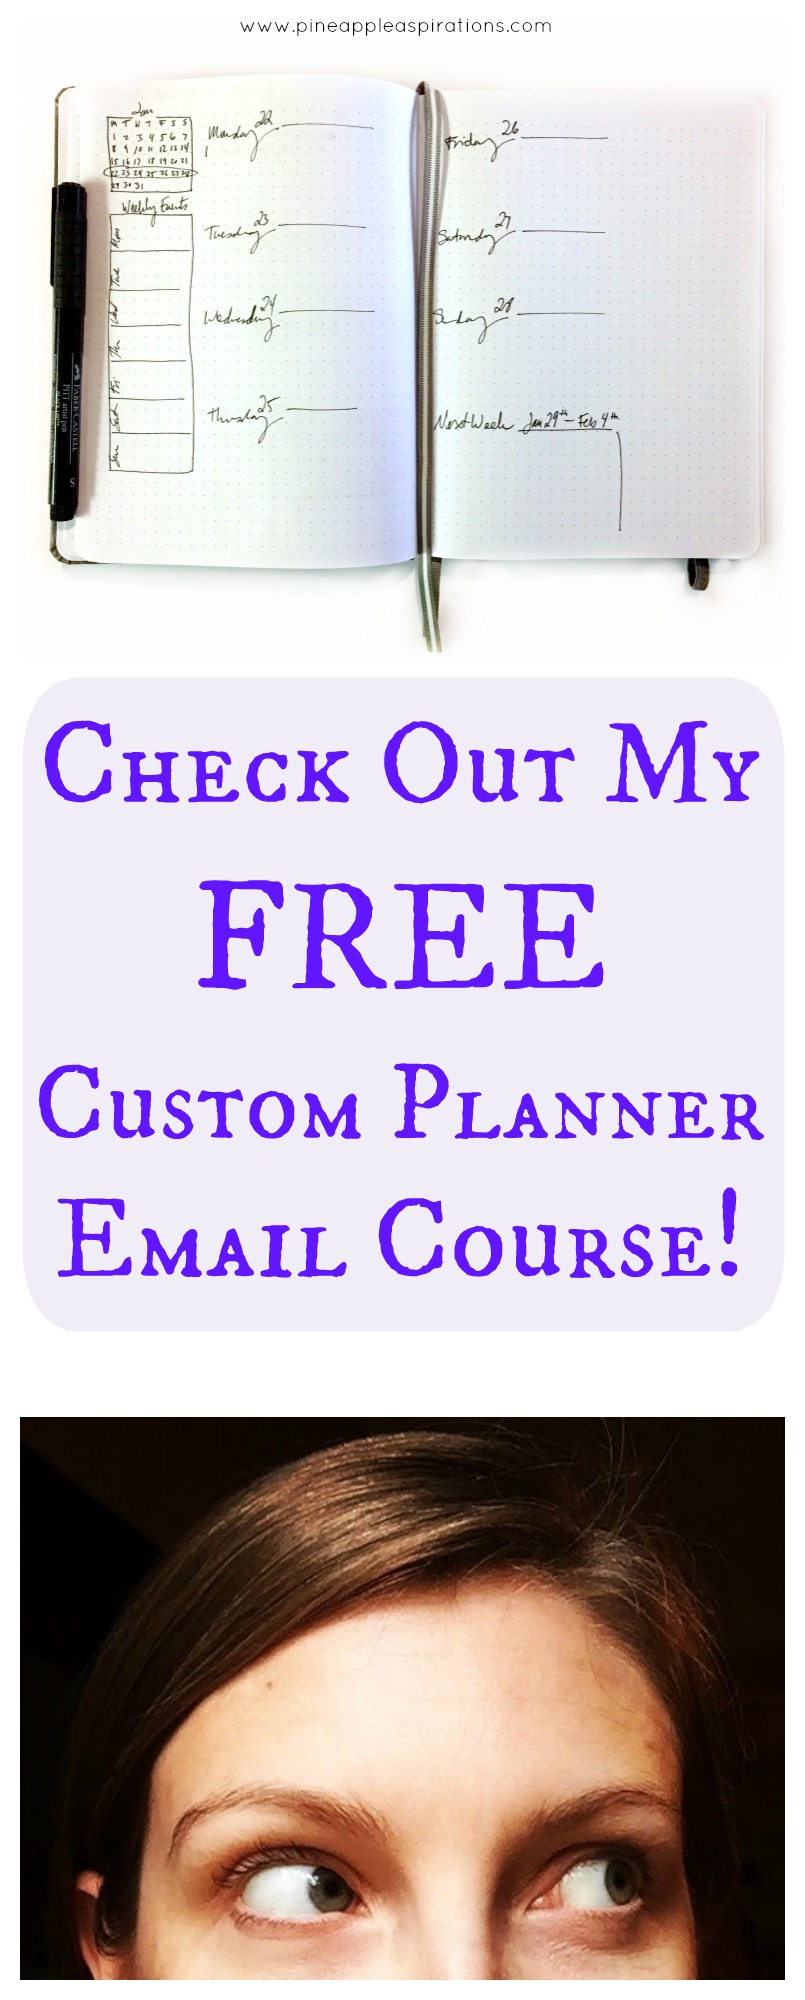 My Custom Planner Free Email Course